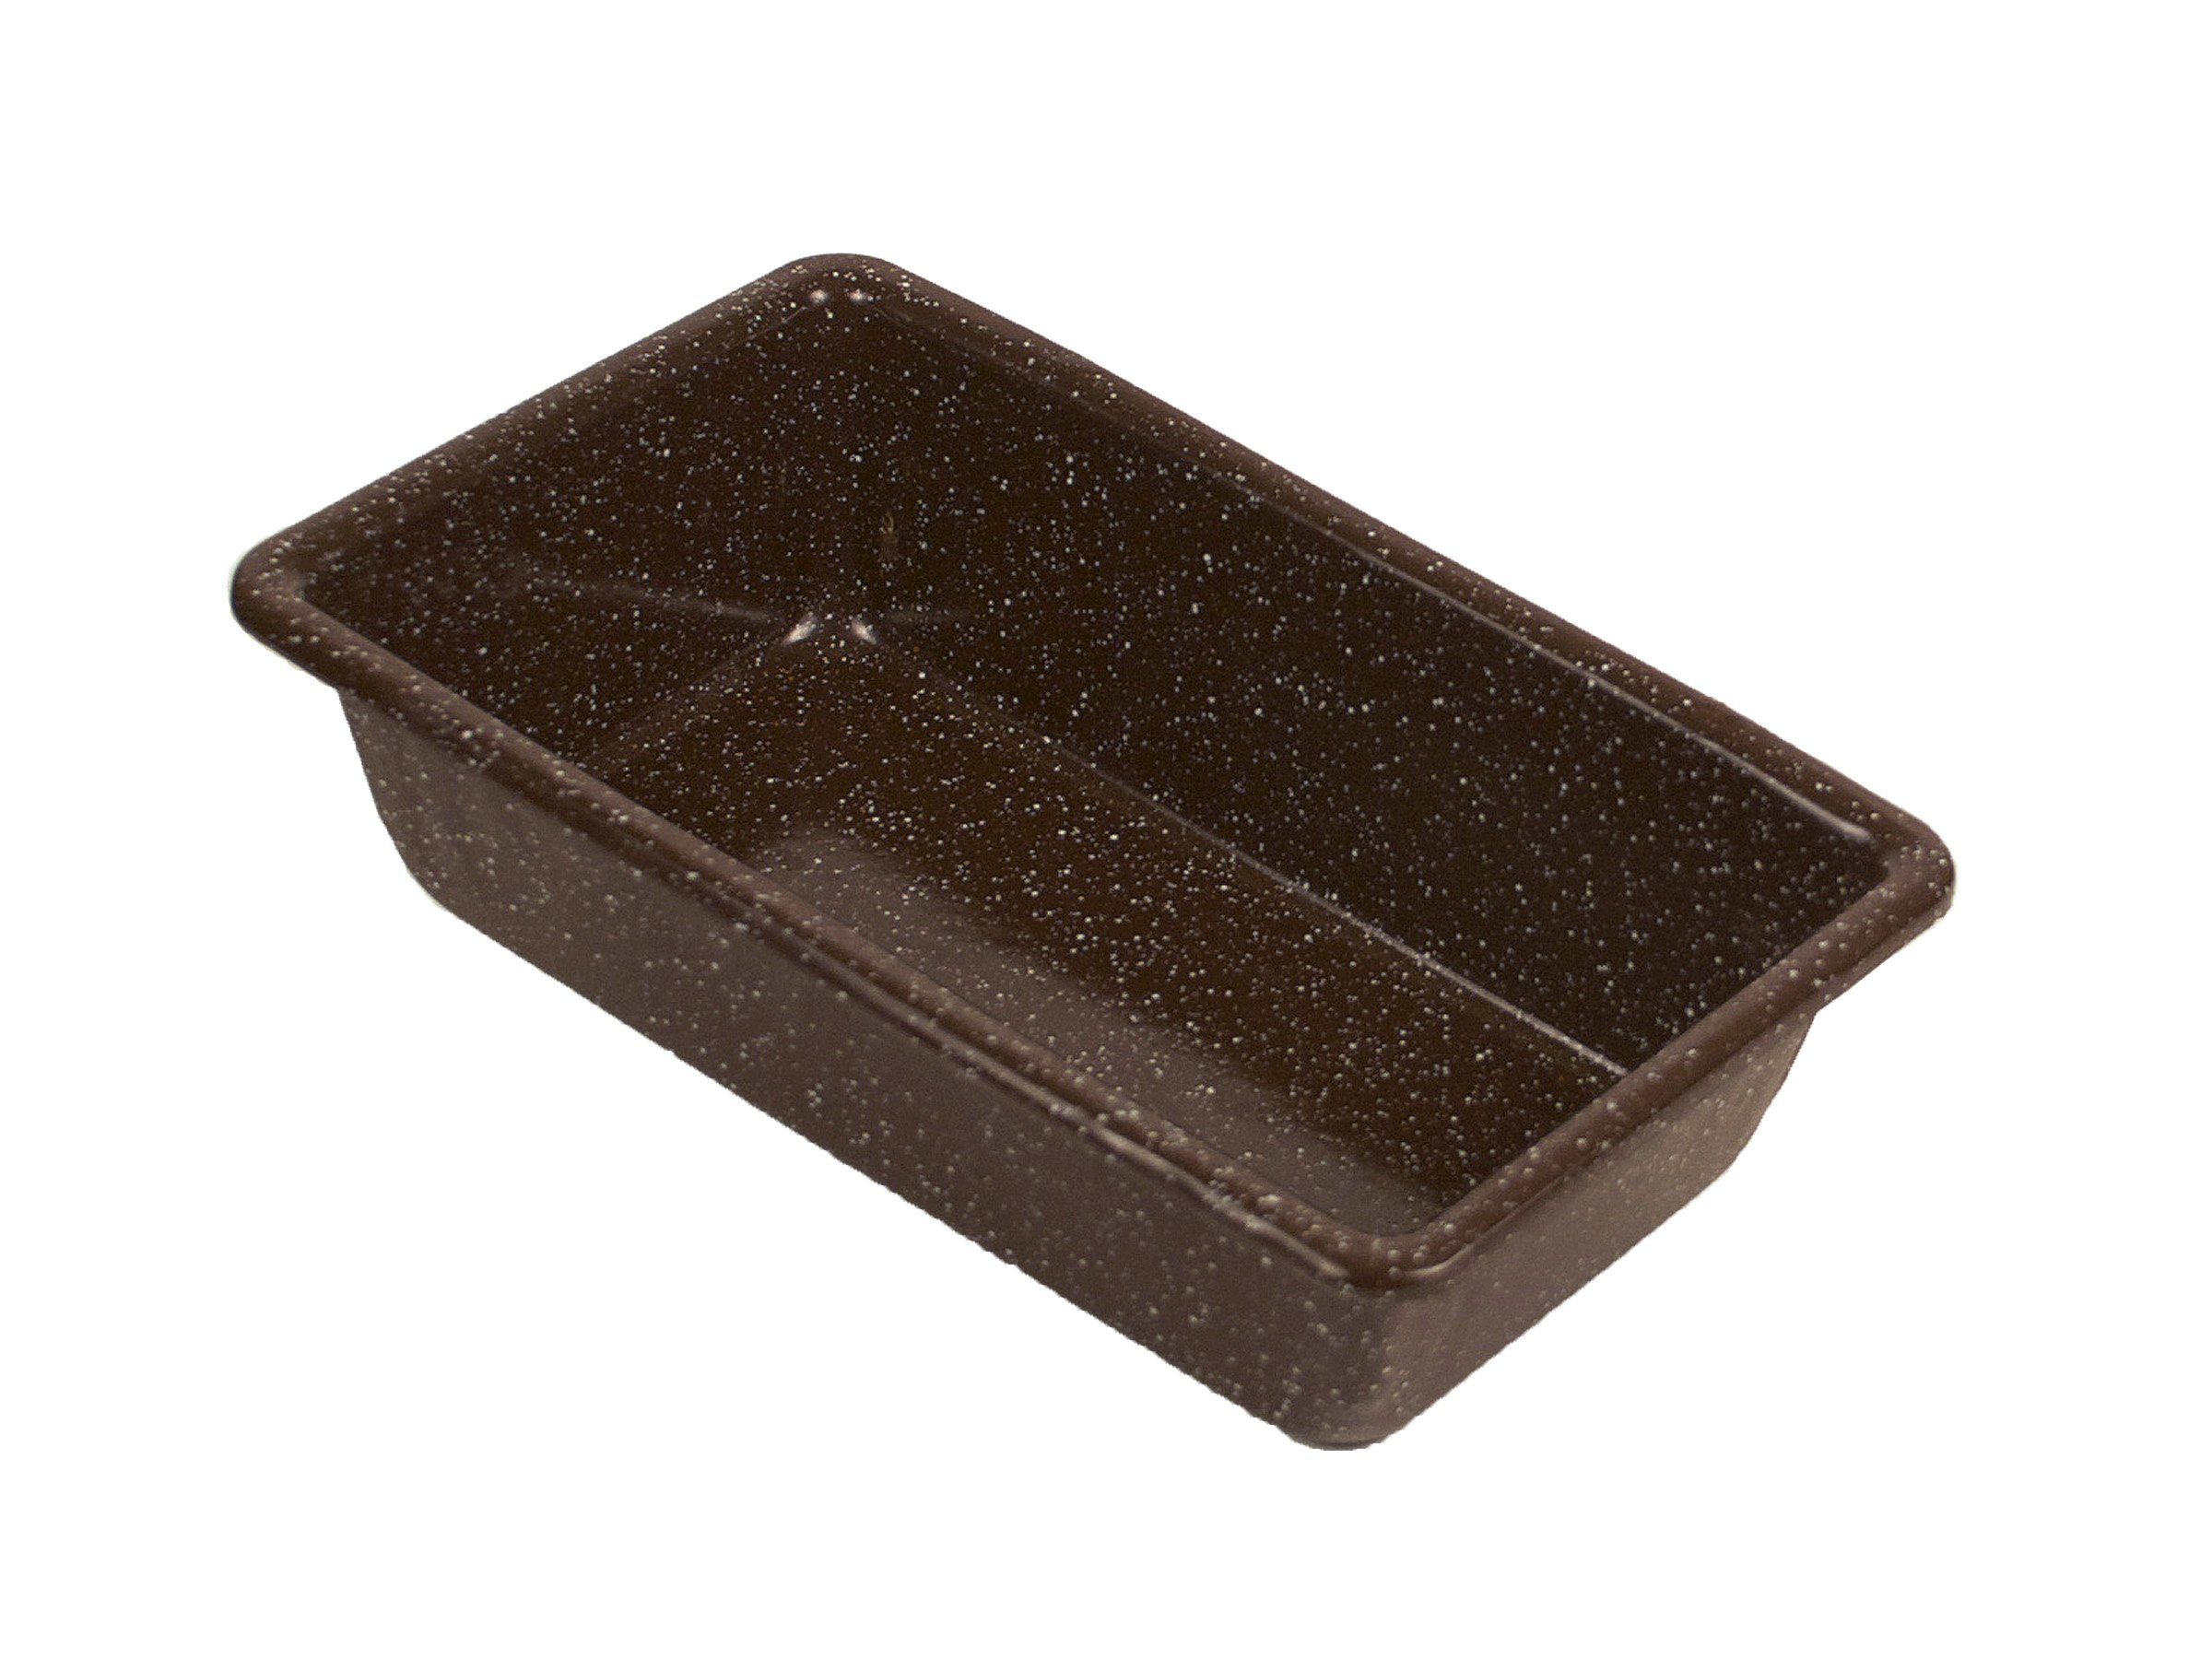 Granite Ware Better Browning Loaf Pan, 9-inch by 5-inch